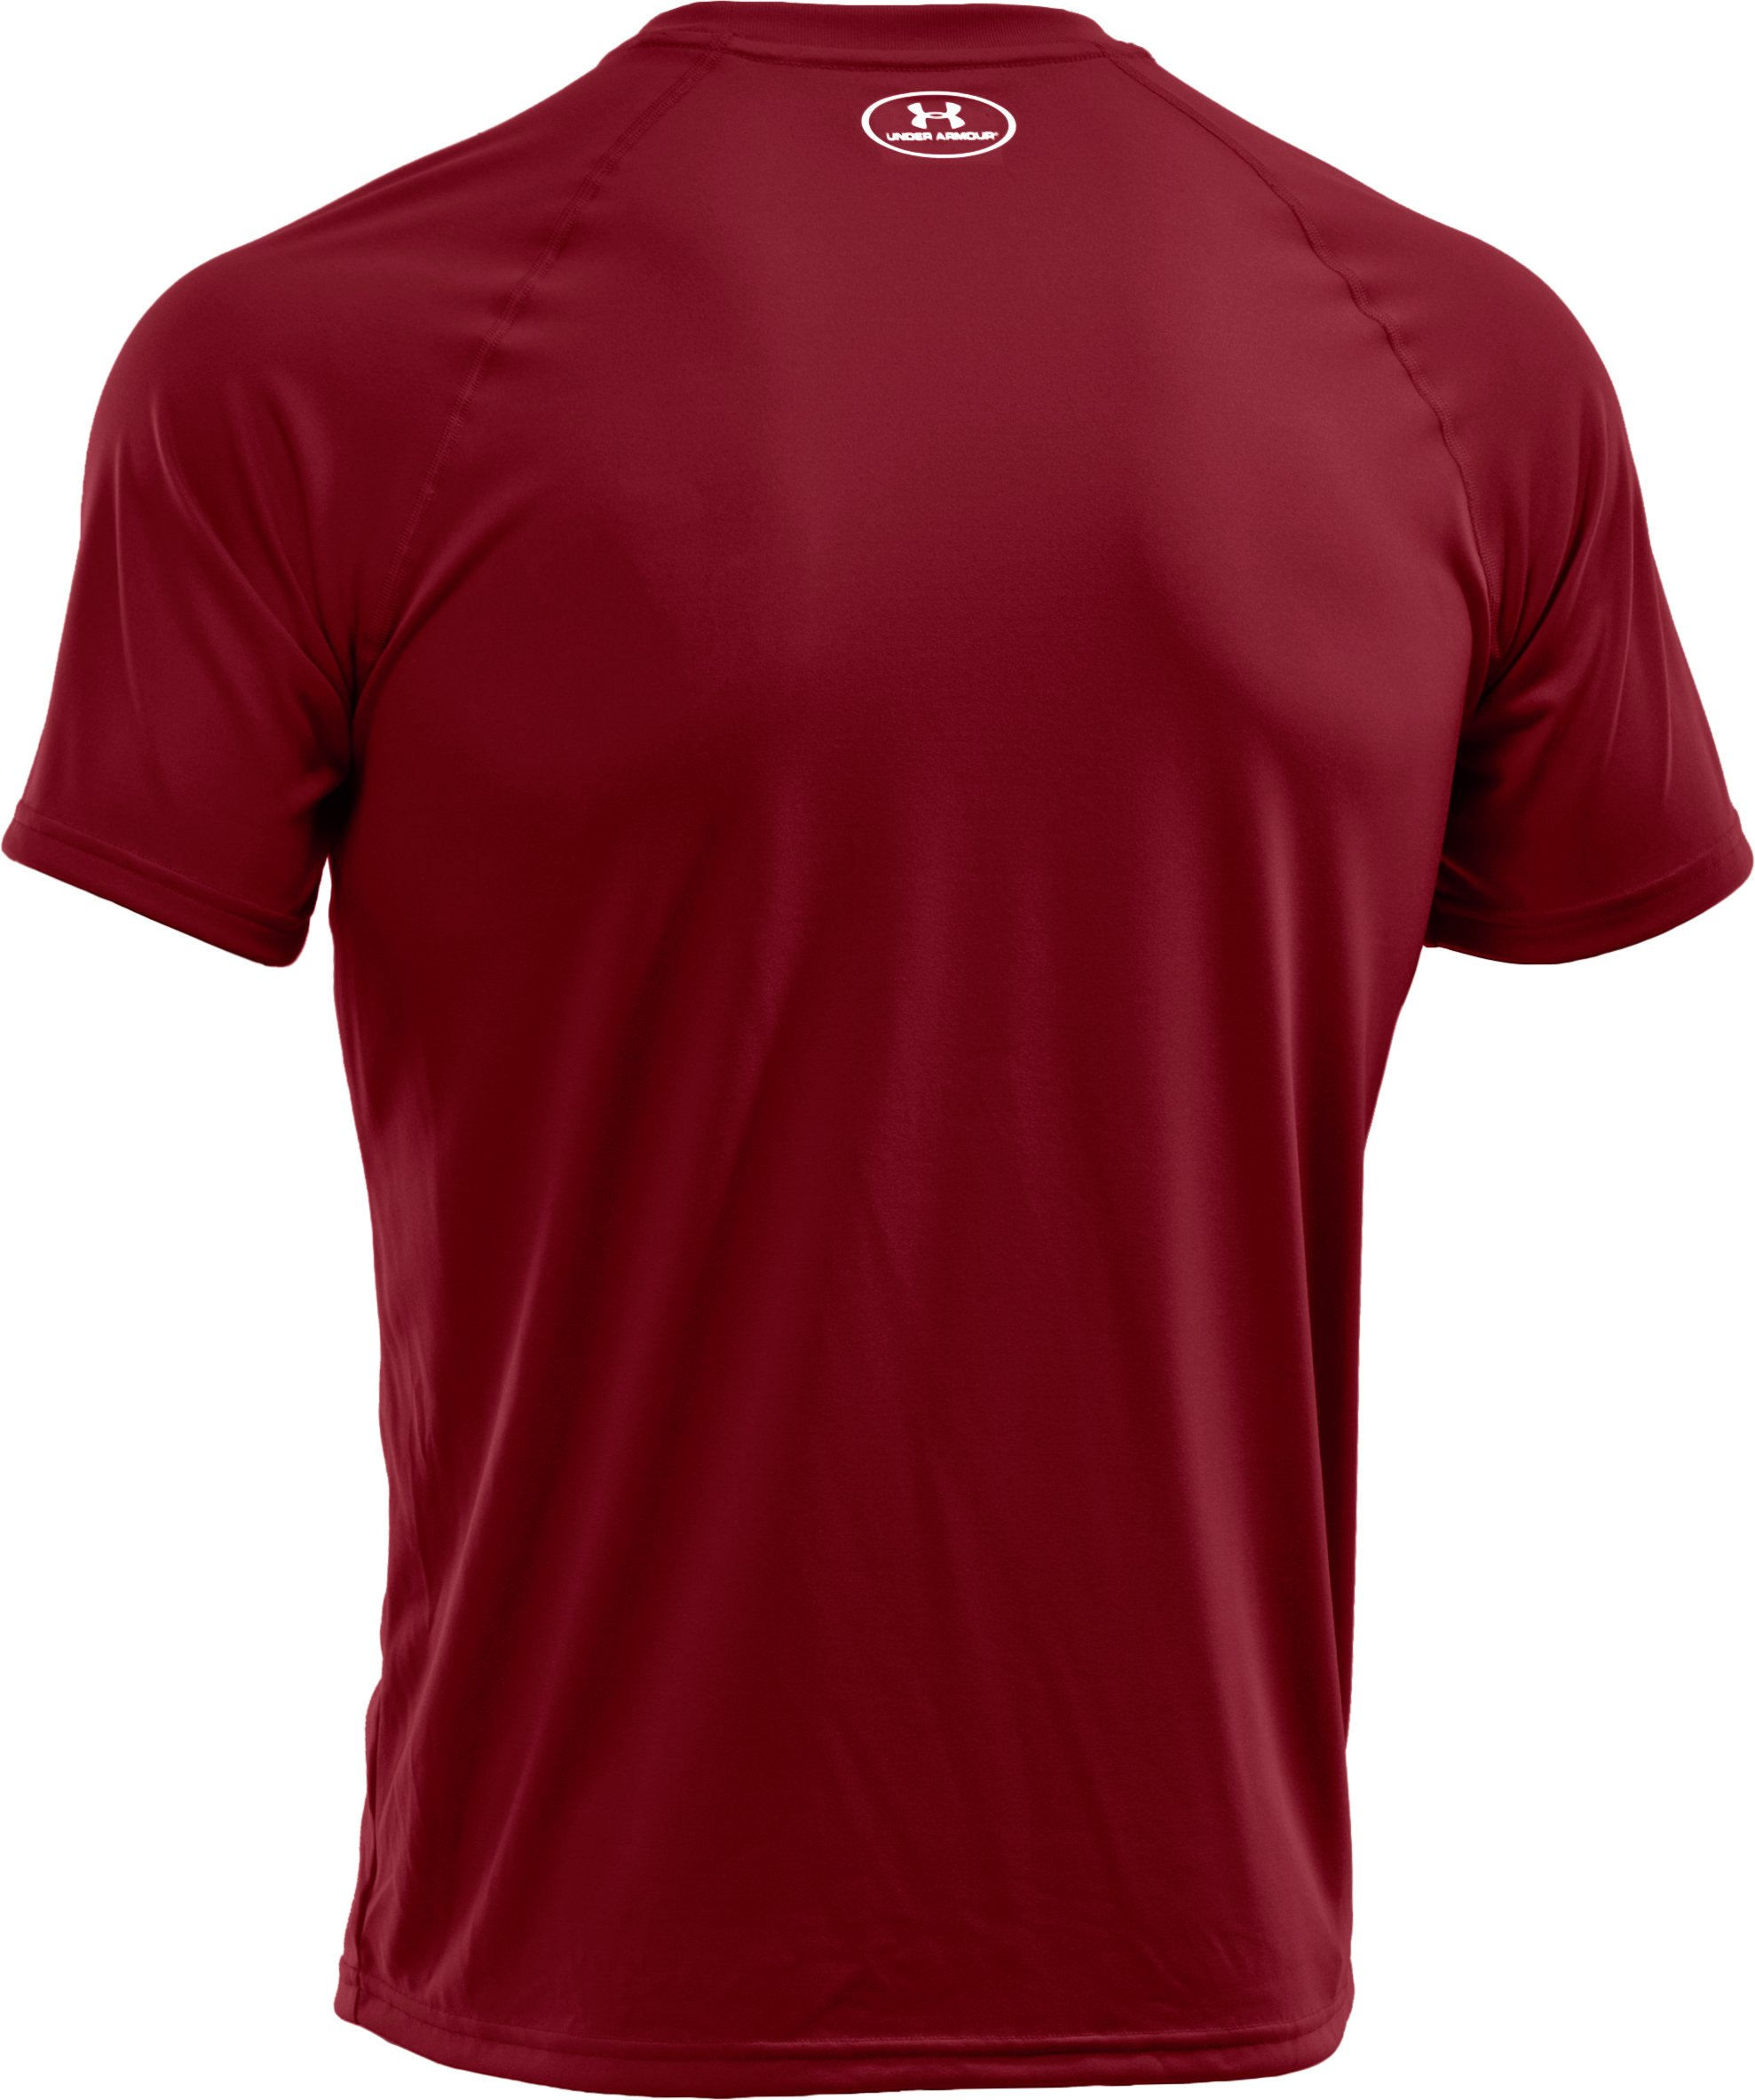 Men's UA Tech™ Short Sleeve T-Shirt, Crimson